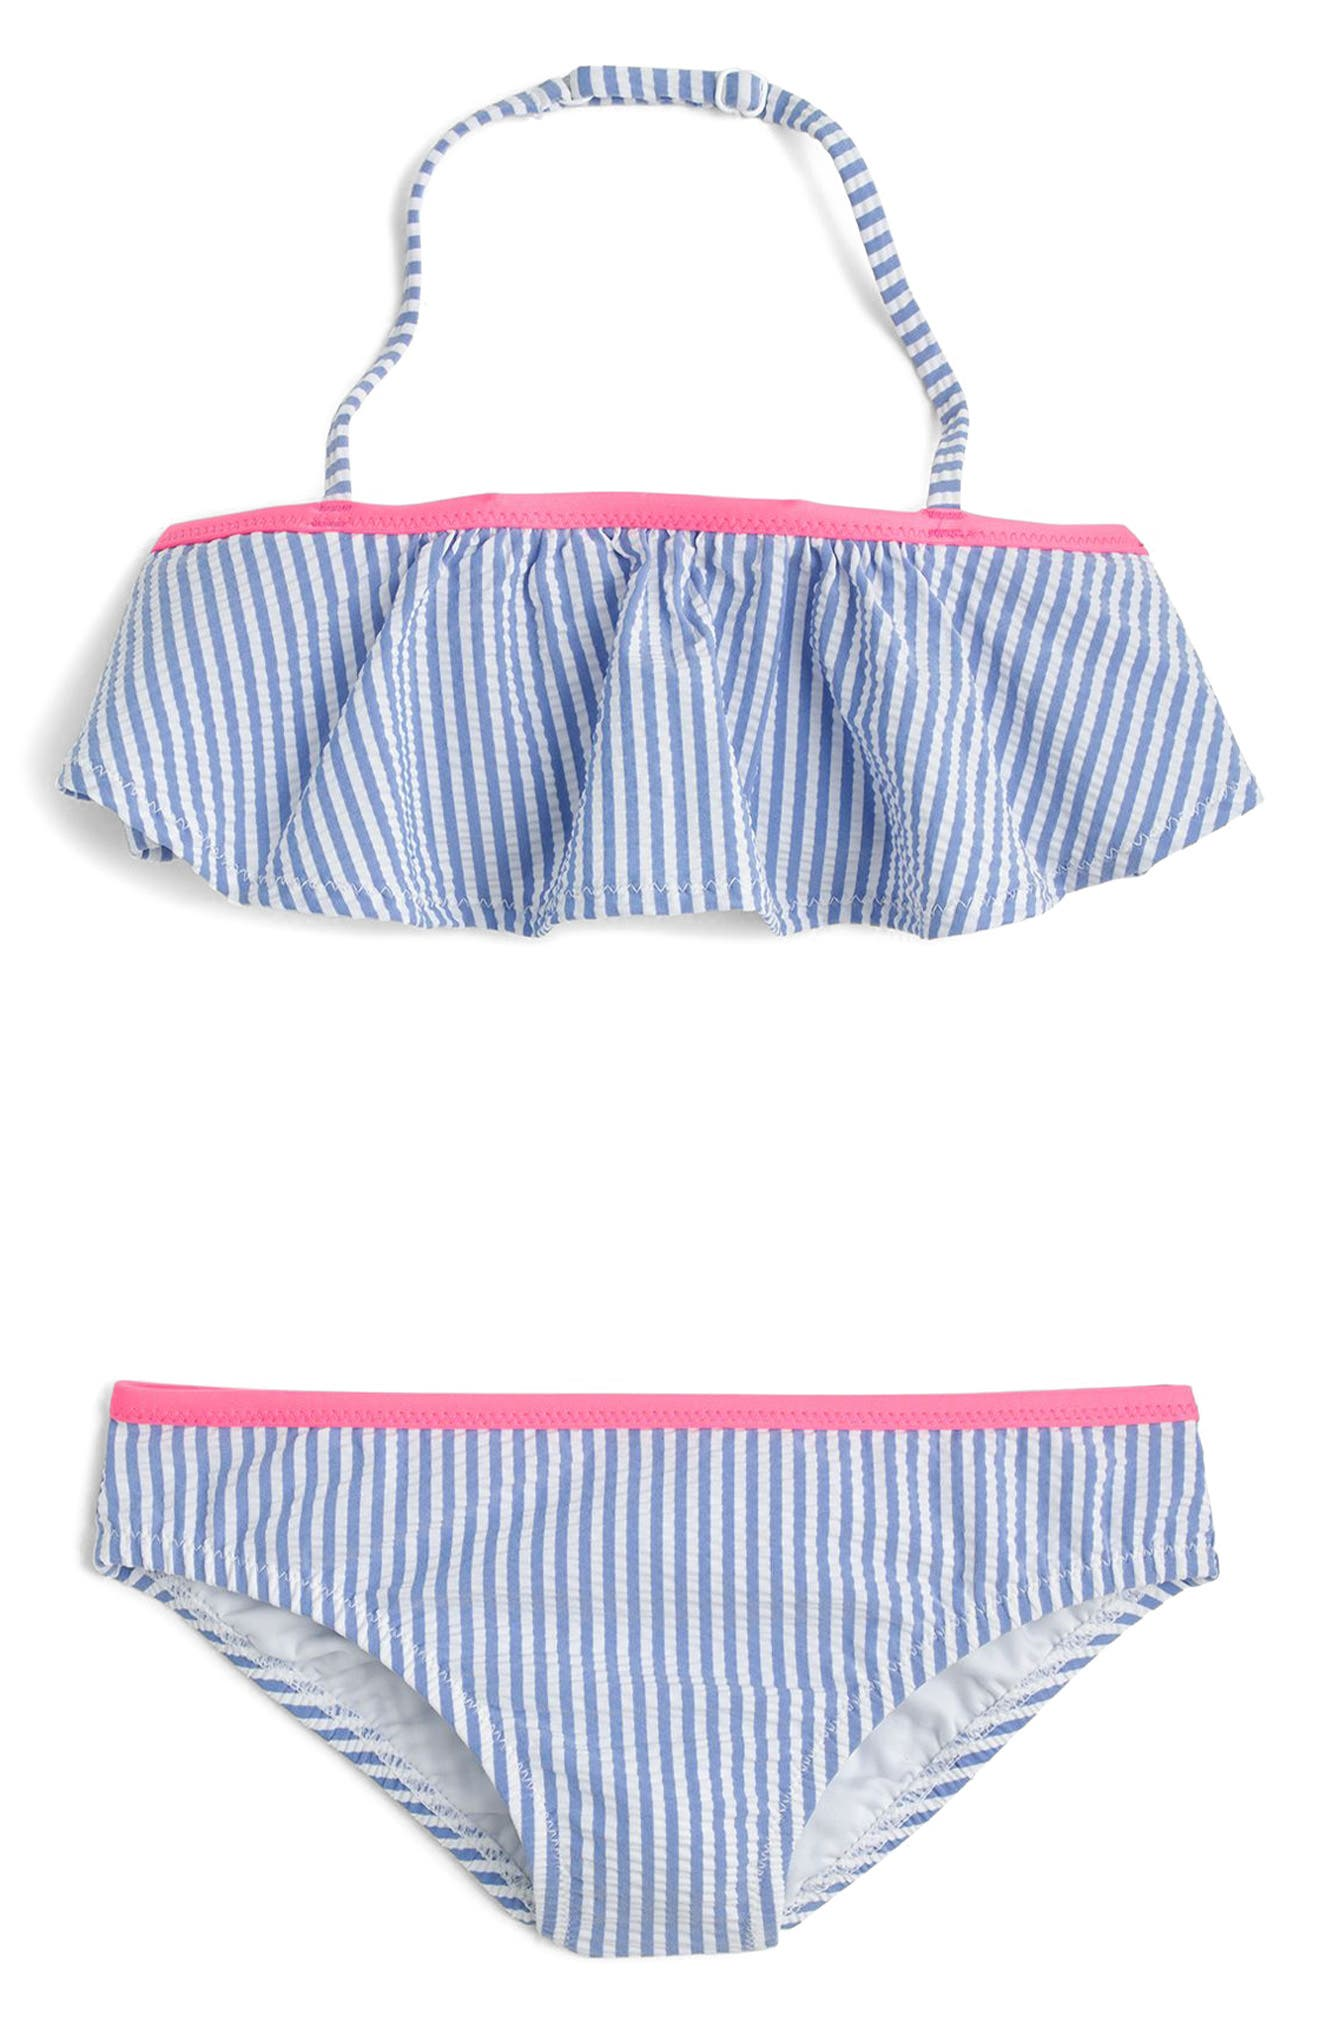 Ruffled Seersucker Two-Piece Bikini Swimsuit,                             Main thumbnail 1, color,                             400